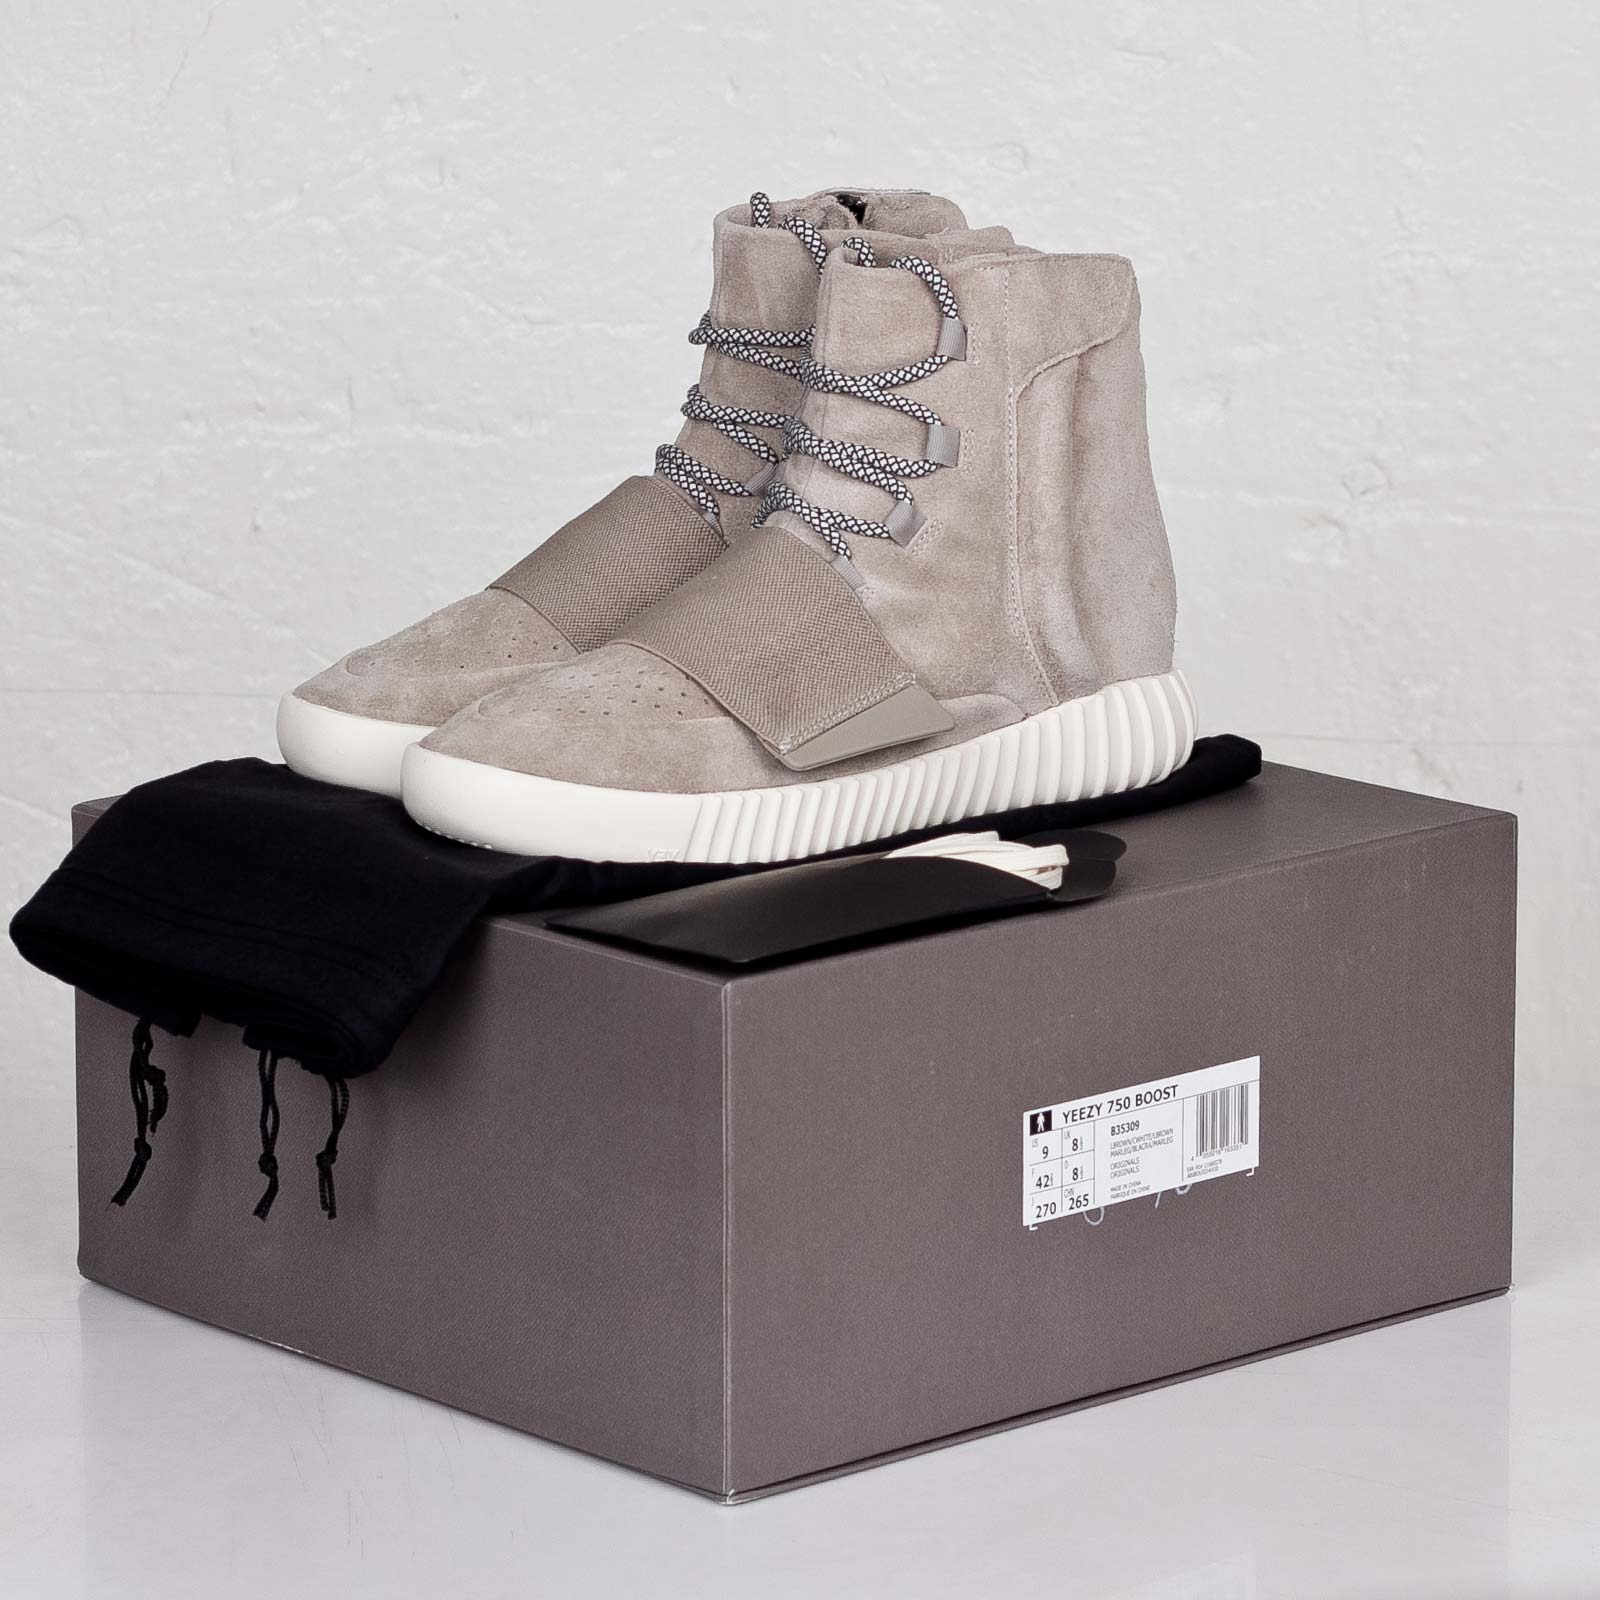 huge selection of a6f50 36a60 adidas Yeezy 750 Boost - B35309 - Sneakersnstuff | sneakers ...